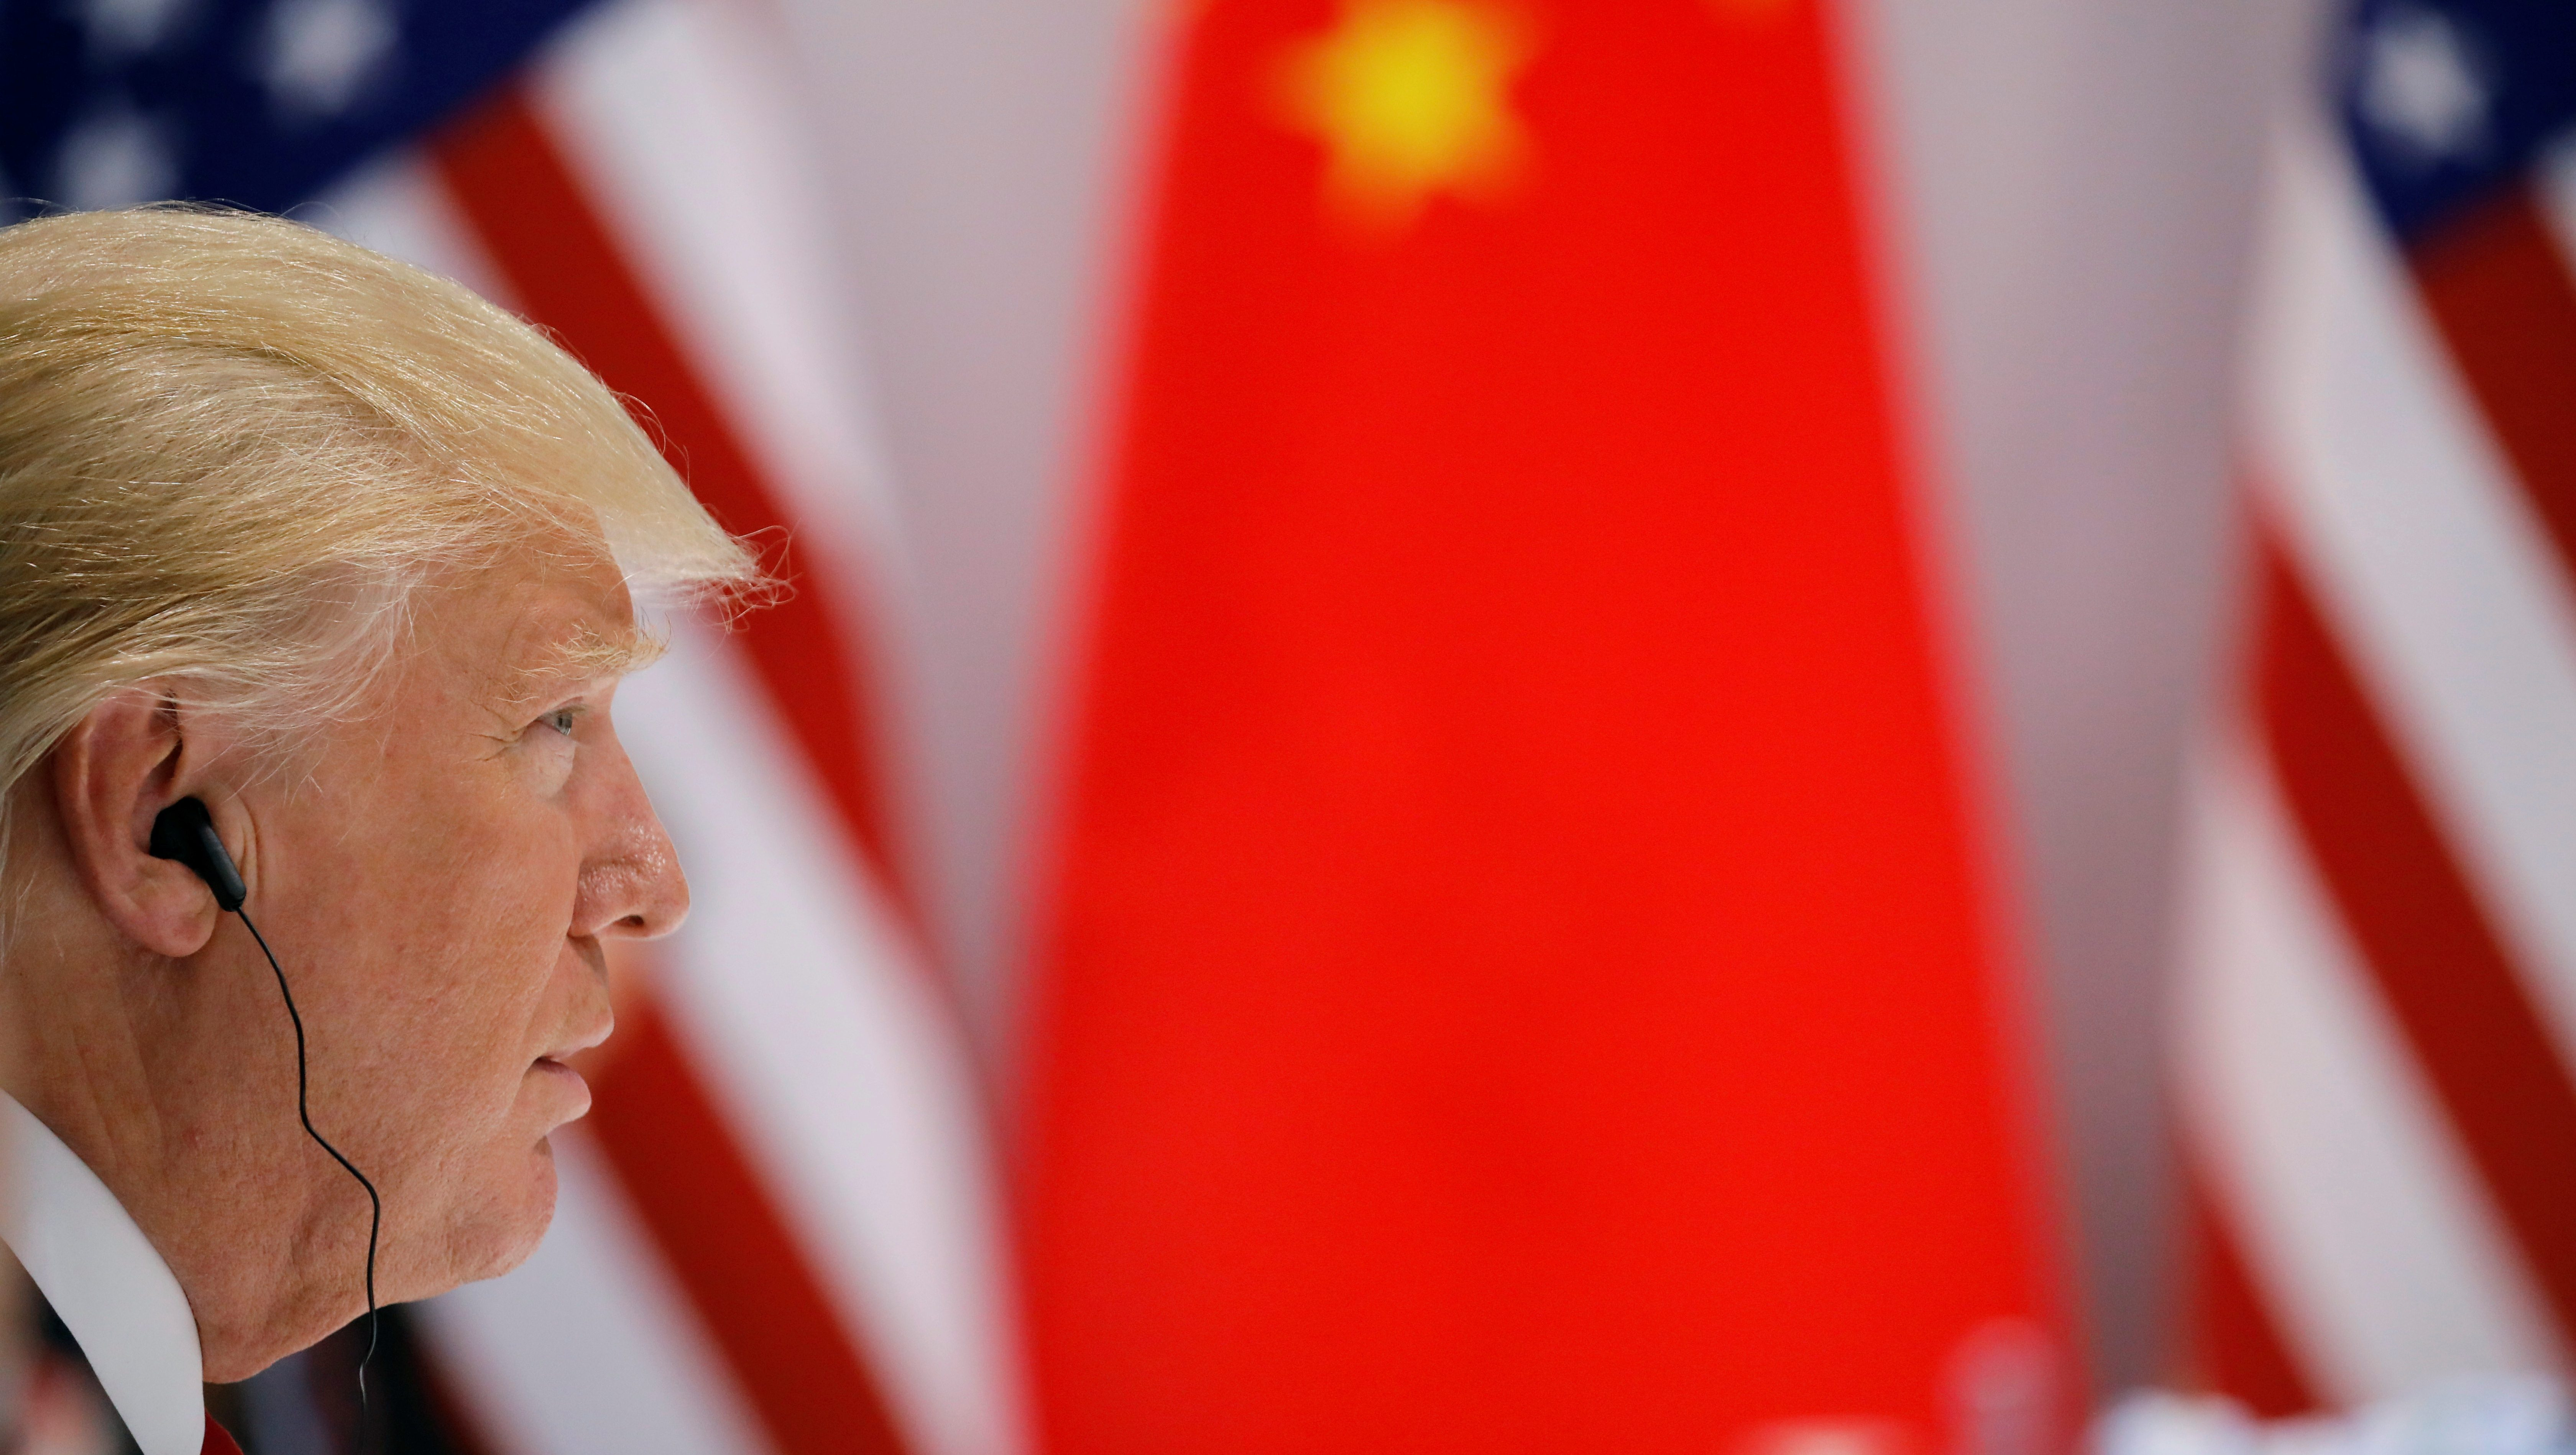 U.S. President Donald Trump attends the bilateral meeting with Chinese President Xi Jinping at the G20 leaders summit in Hamburg, Germany July 8, 2017.